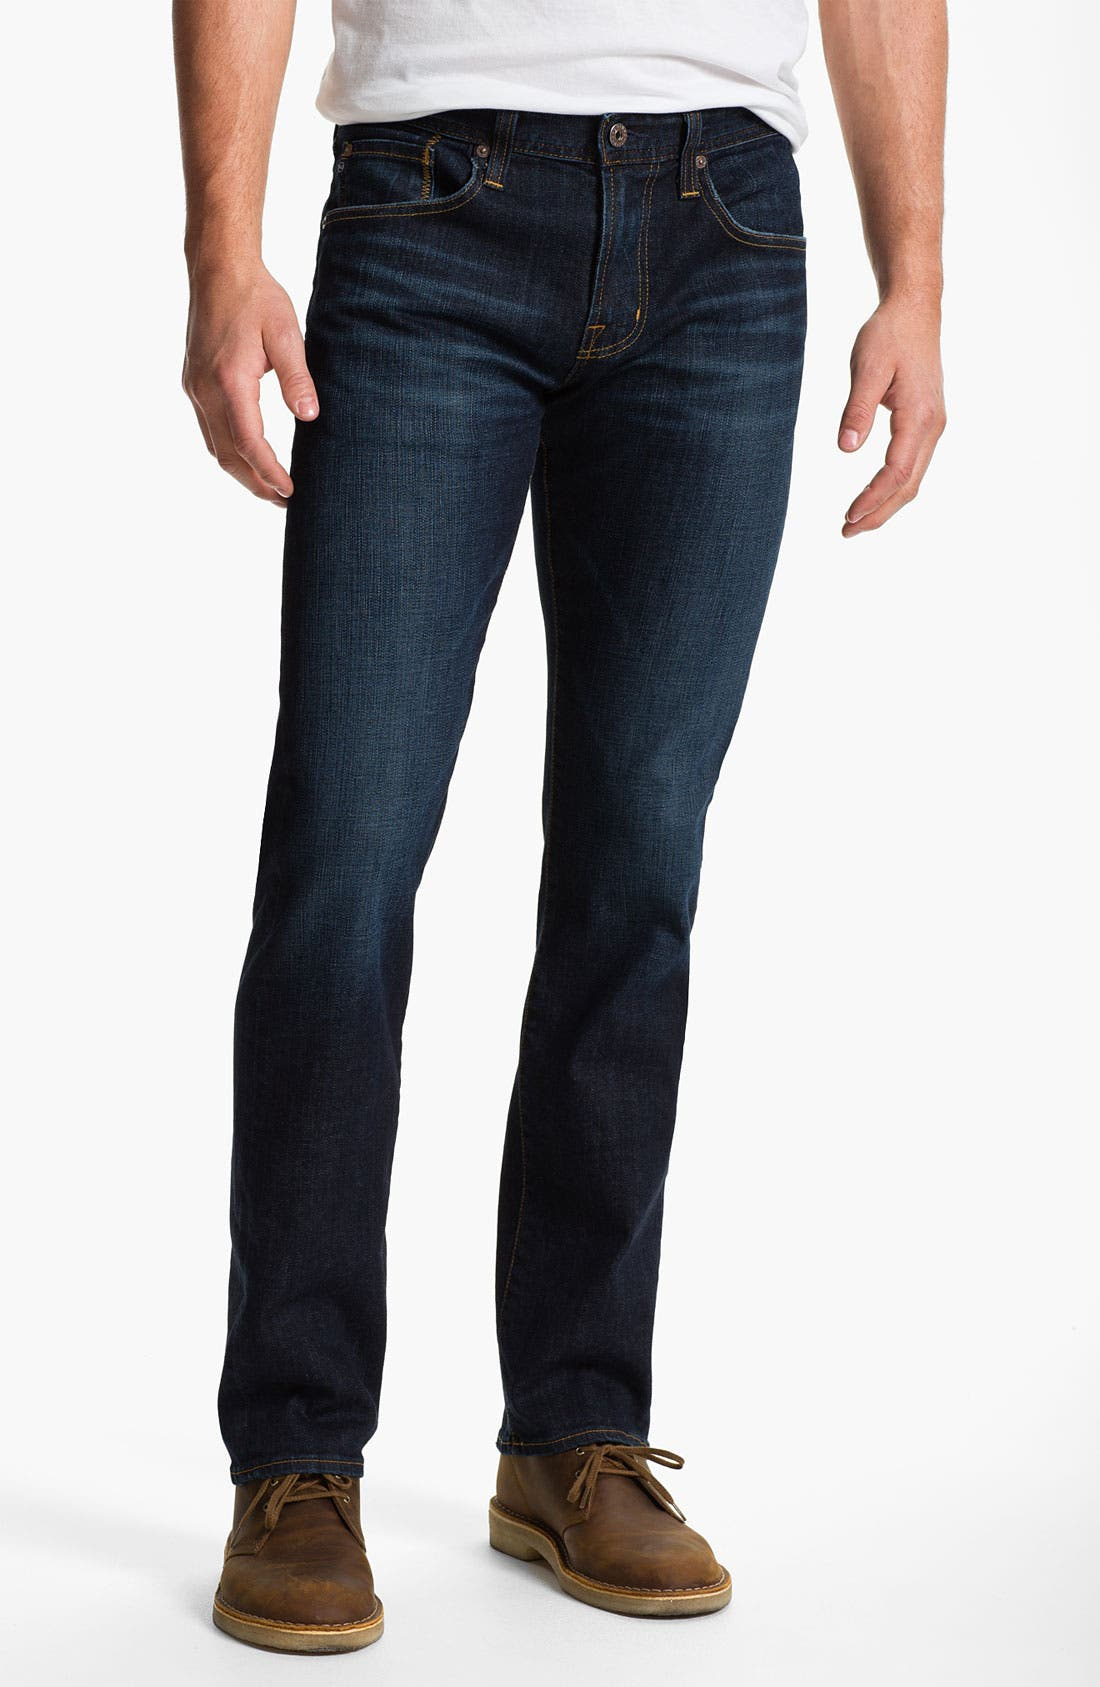 Alternate Image 1 Selected - AG 'Matchbox' Slim Fit Jeans (Robinson)